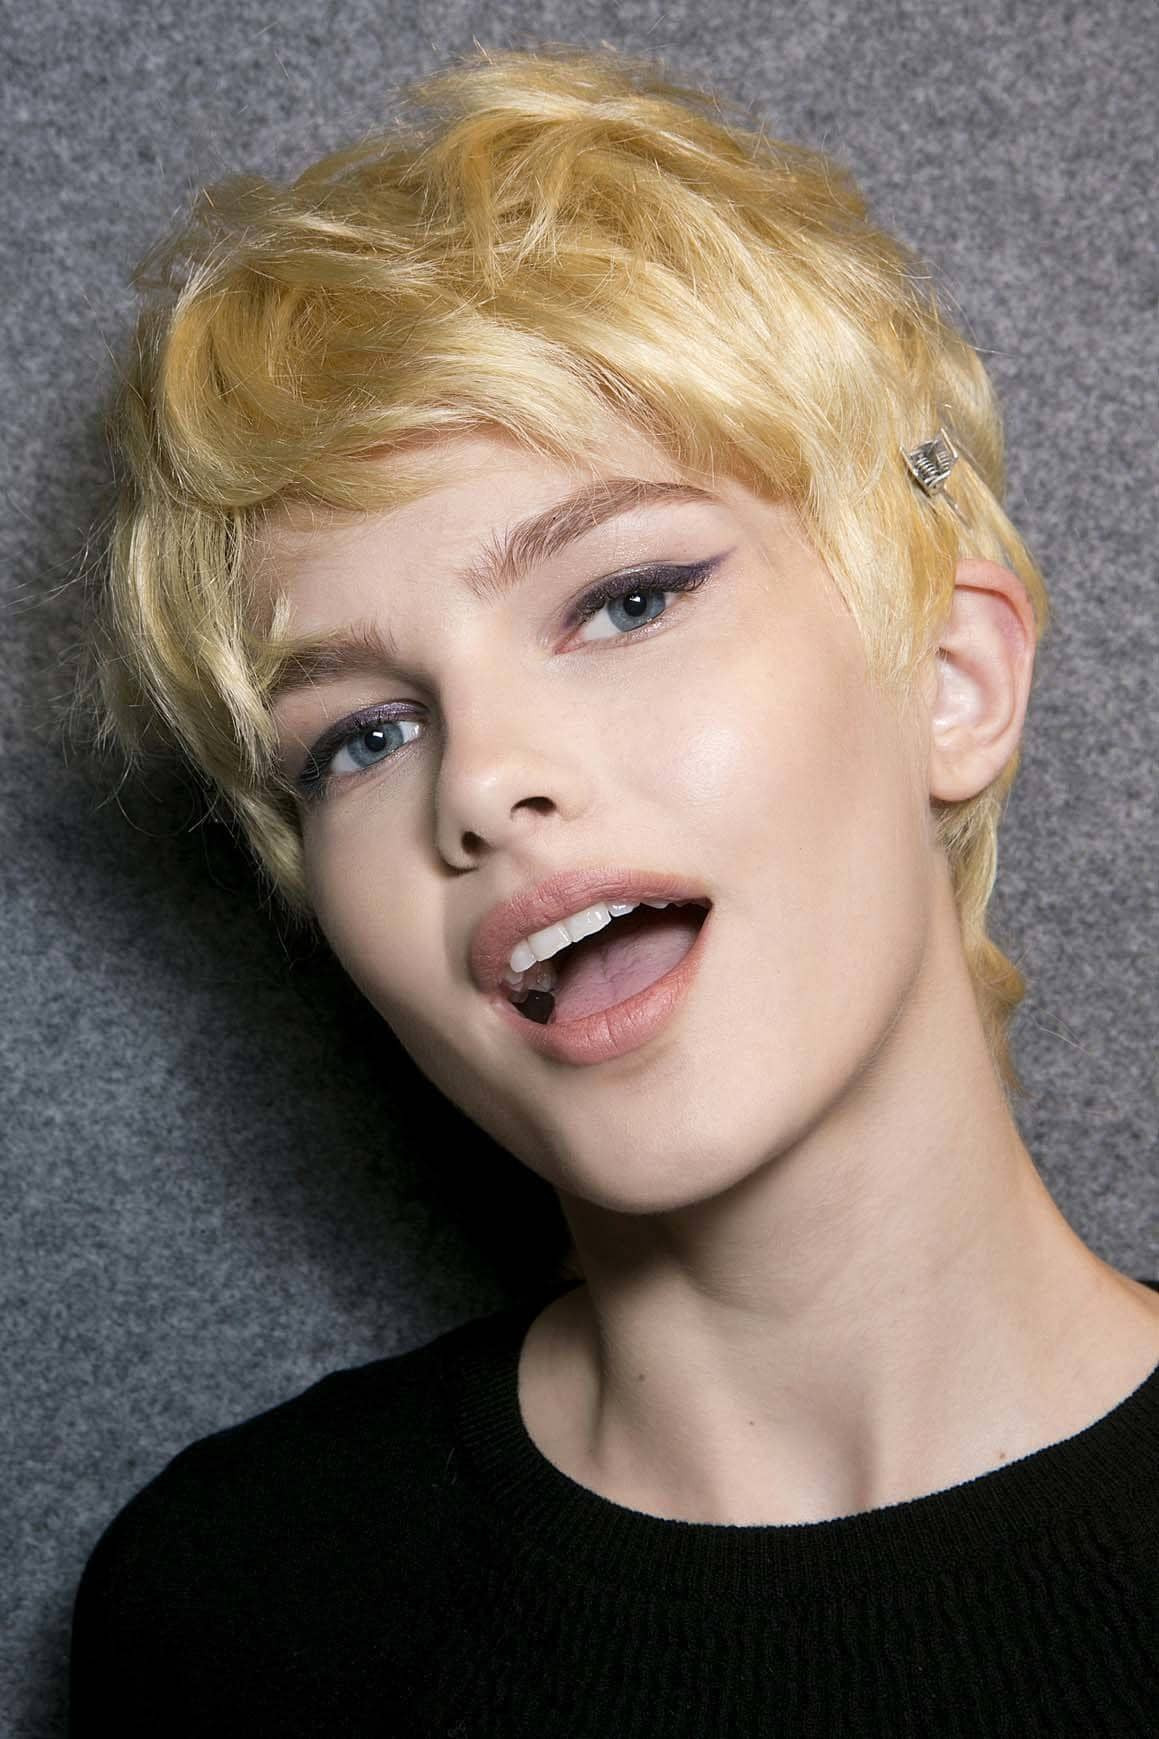 Best ideas about Haircuts For Heart Shaped Faces . Save or Pin Flattering haircuts for heart shaped face Now.